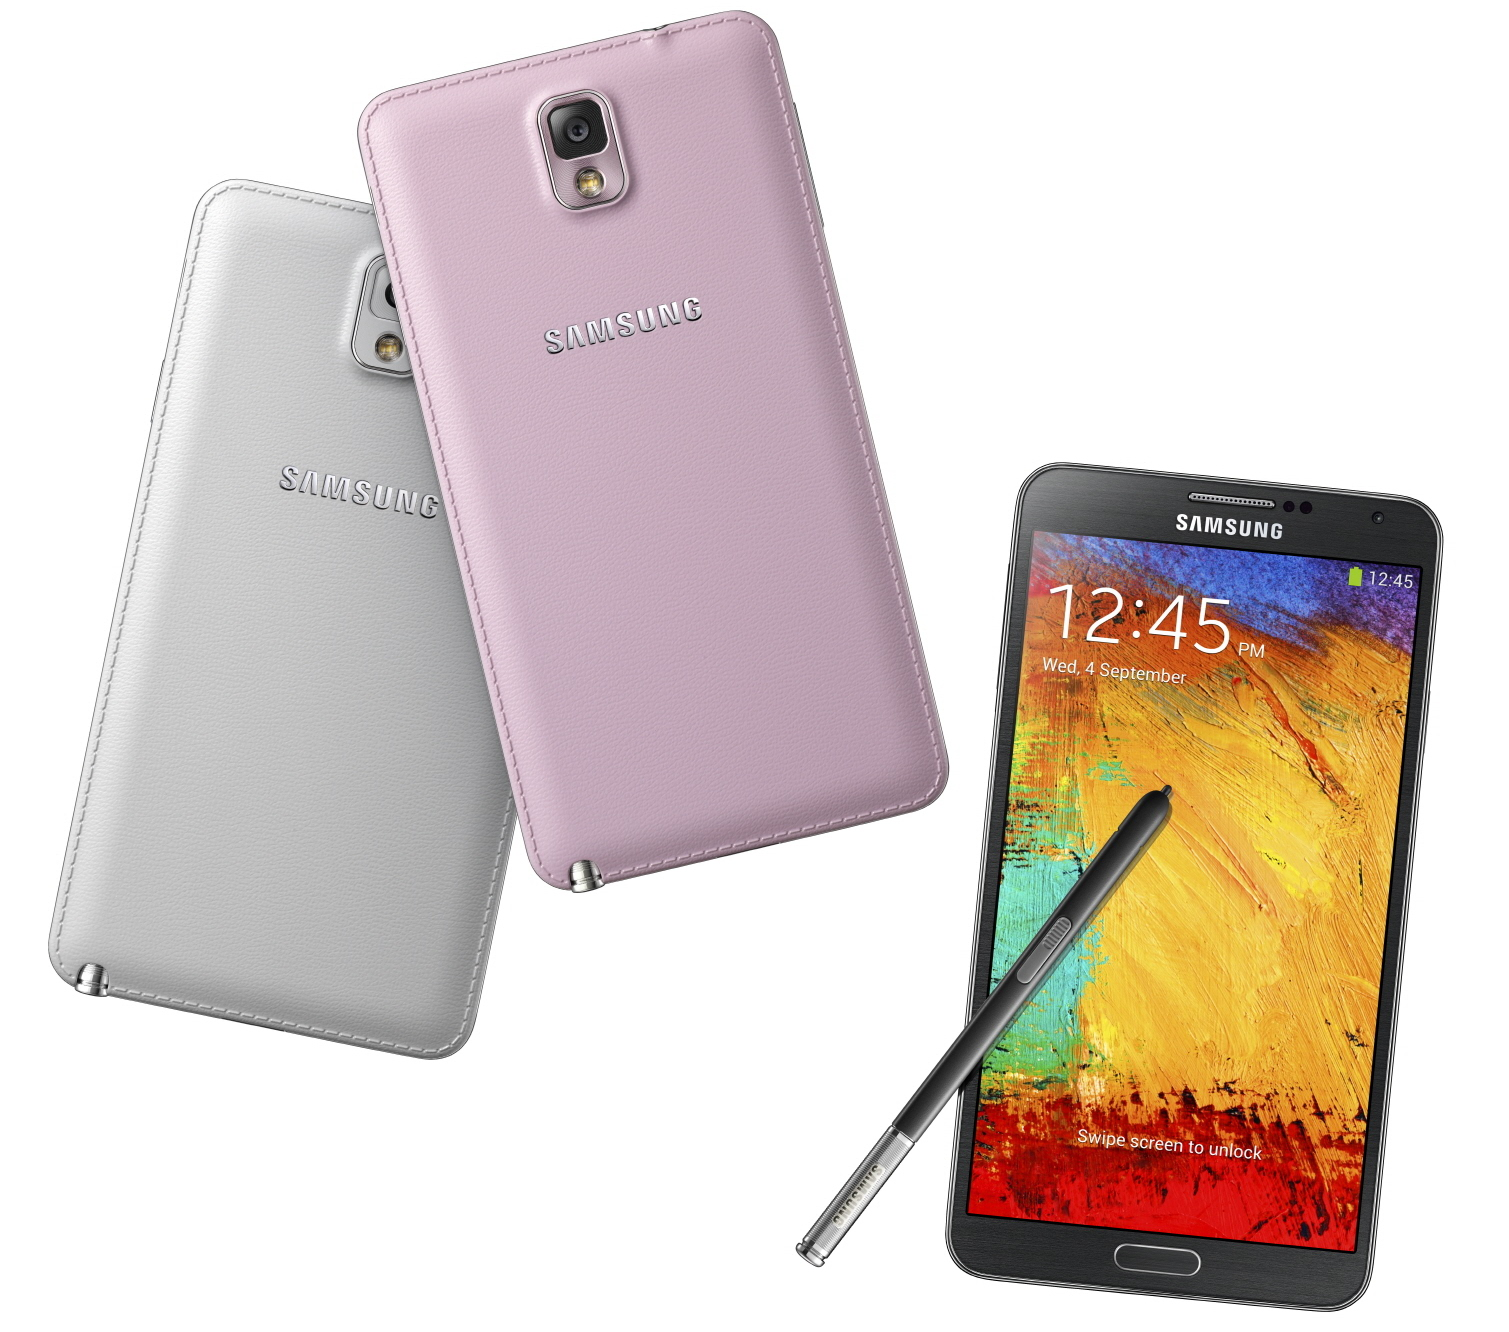 The U.S. Cellular Galaxy Note 3 release date is set for October, but major details are missing.